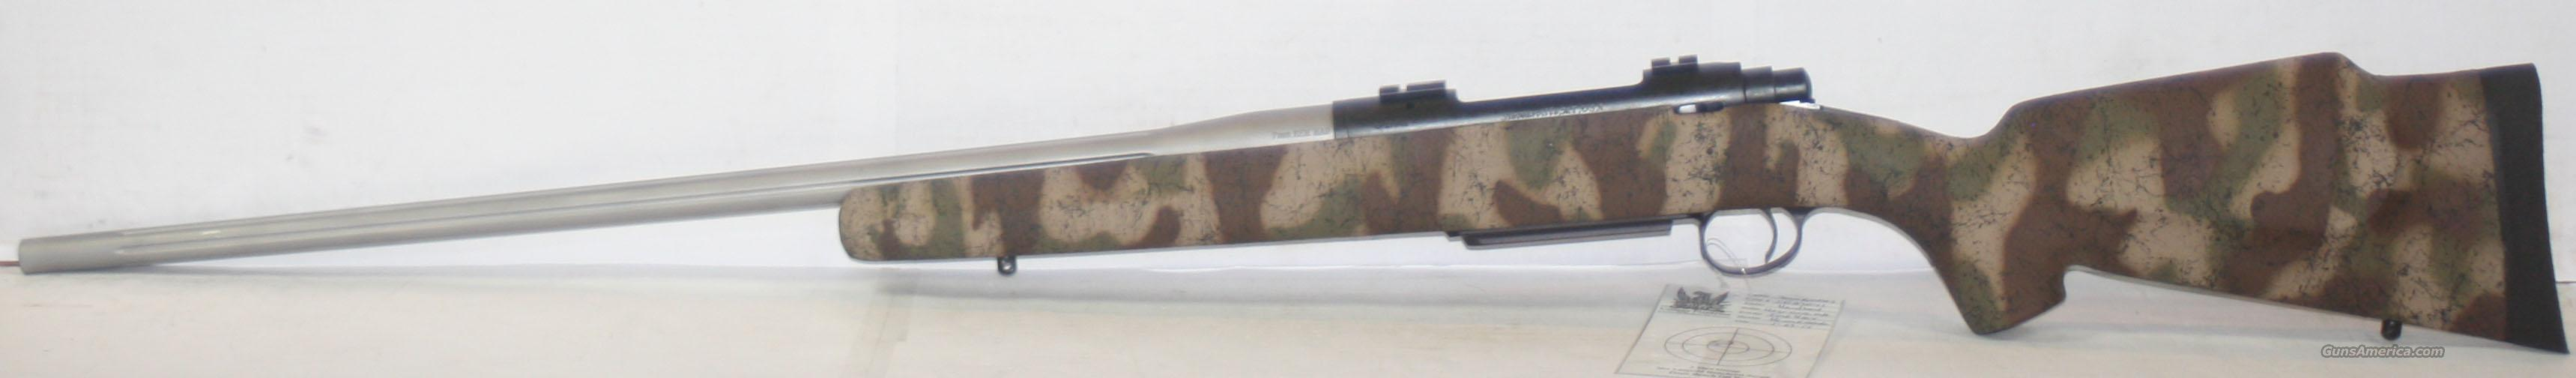 "COOPER MODEL 56 JACKSON HUNTER 7MM REM MAGNUM WITH CUSTOM TRI DESERT CAMO 26"" STAINLESS STEEL BARREL NEW IN BOX  Guns > Rifles > Cooper Arms Rifles"